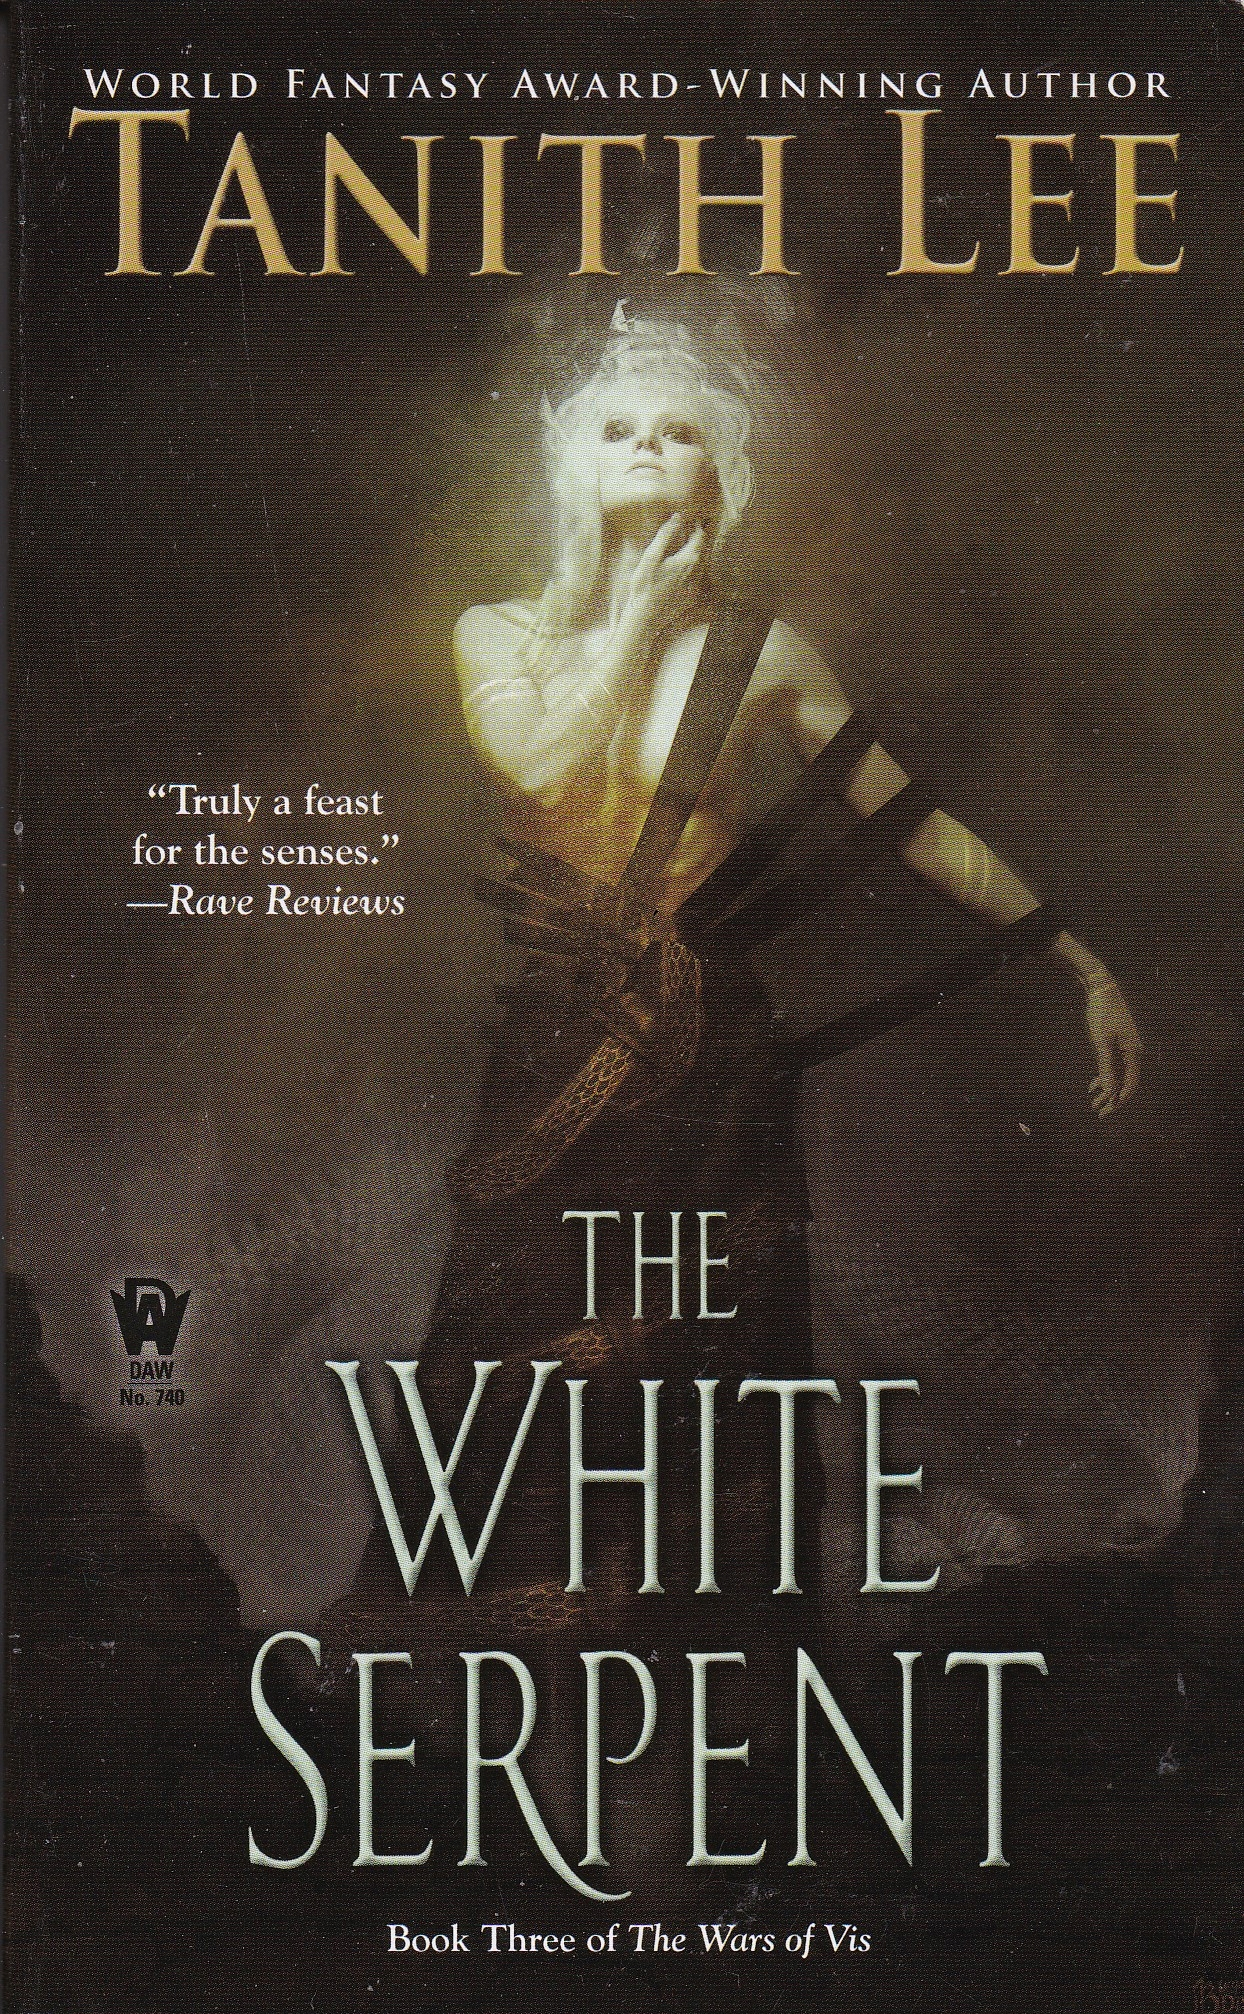 The White Serpent: A Novel Of Vis